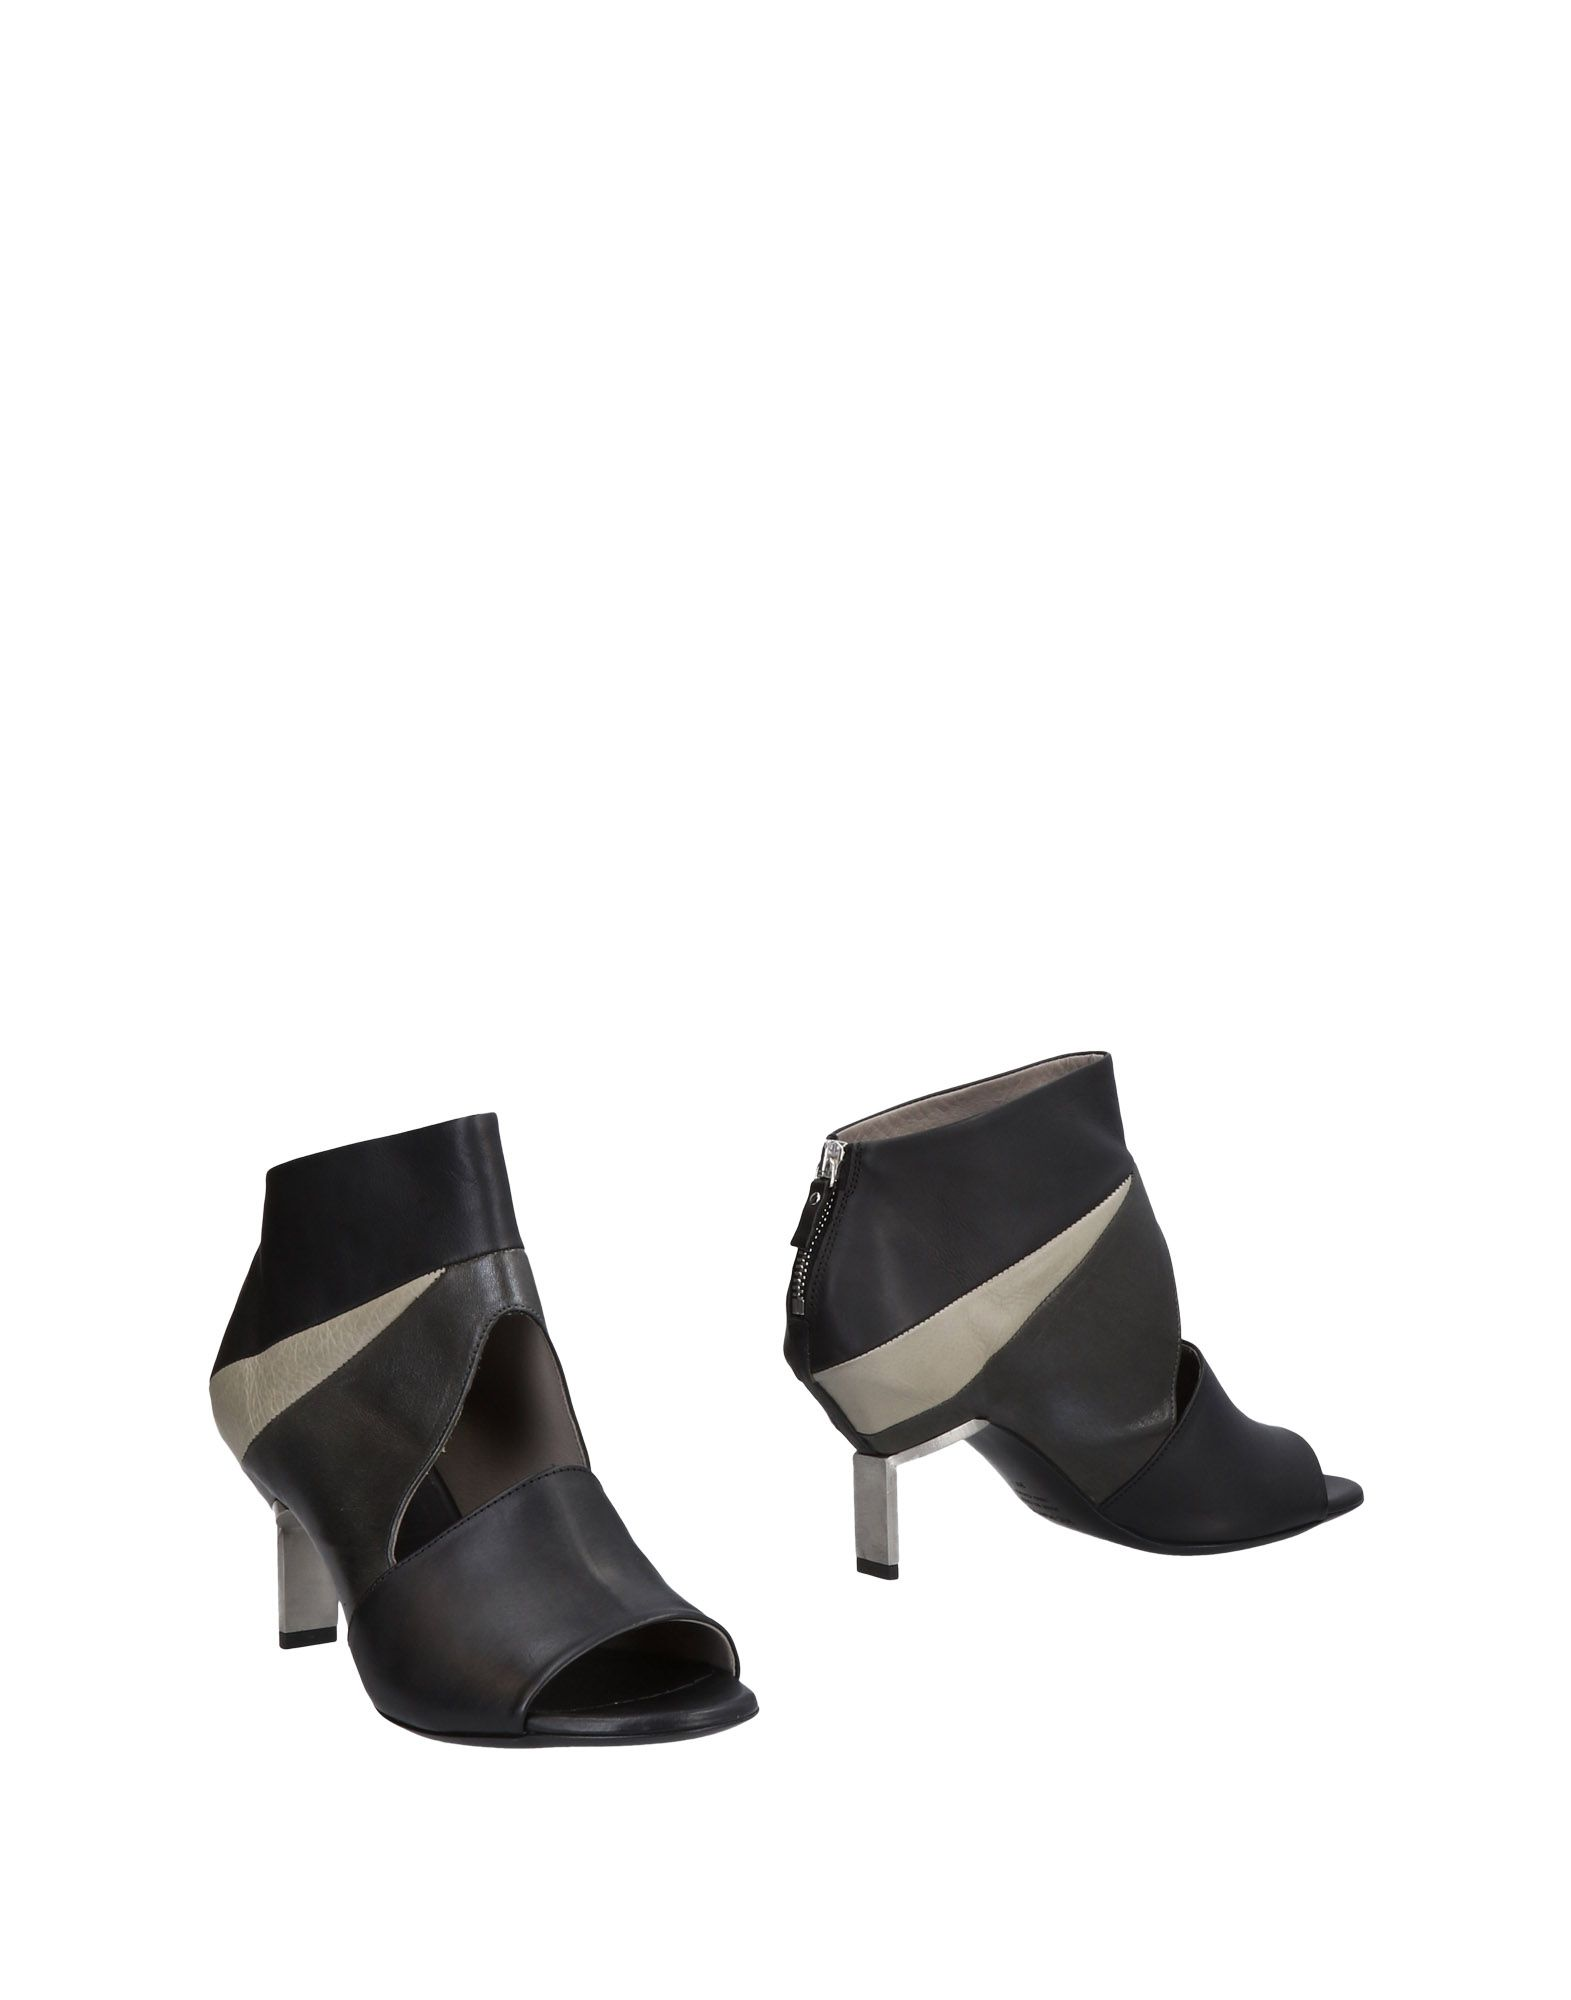 Vic Matiē Ankle Boot - Women Women Women Vic Matiē Ankle Boots online on  United Kingdom - 11468780IF 52ceed